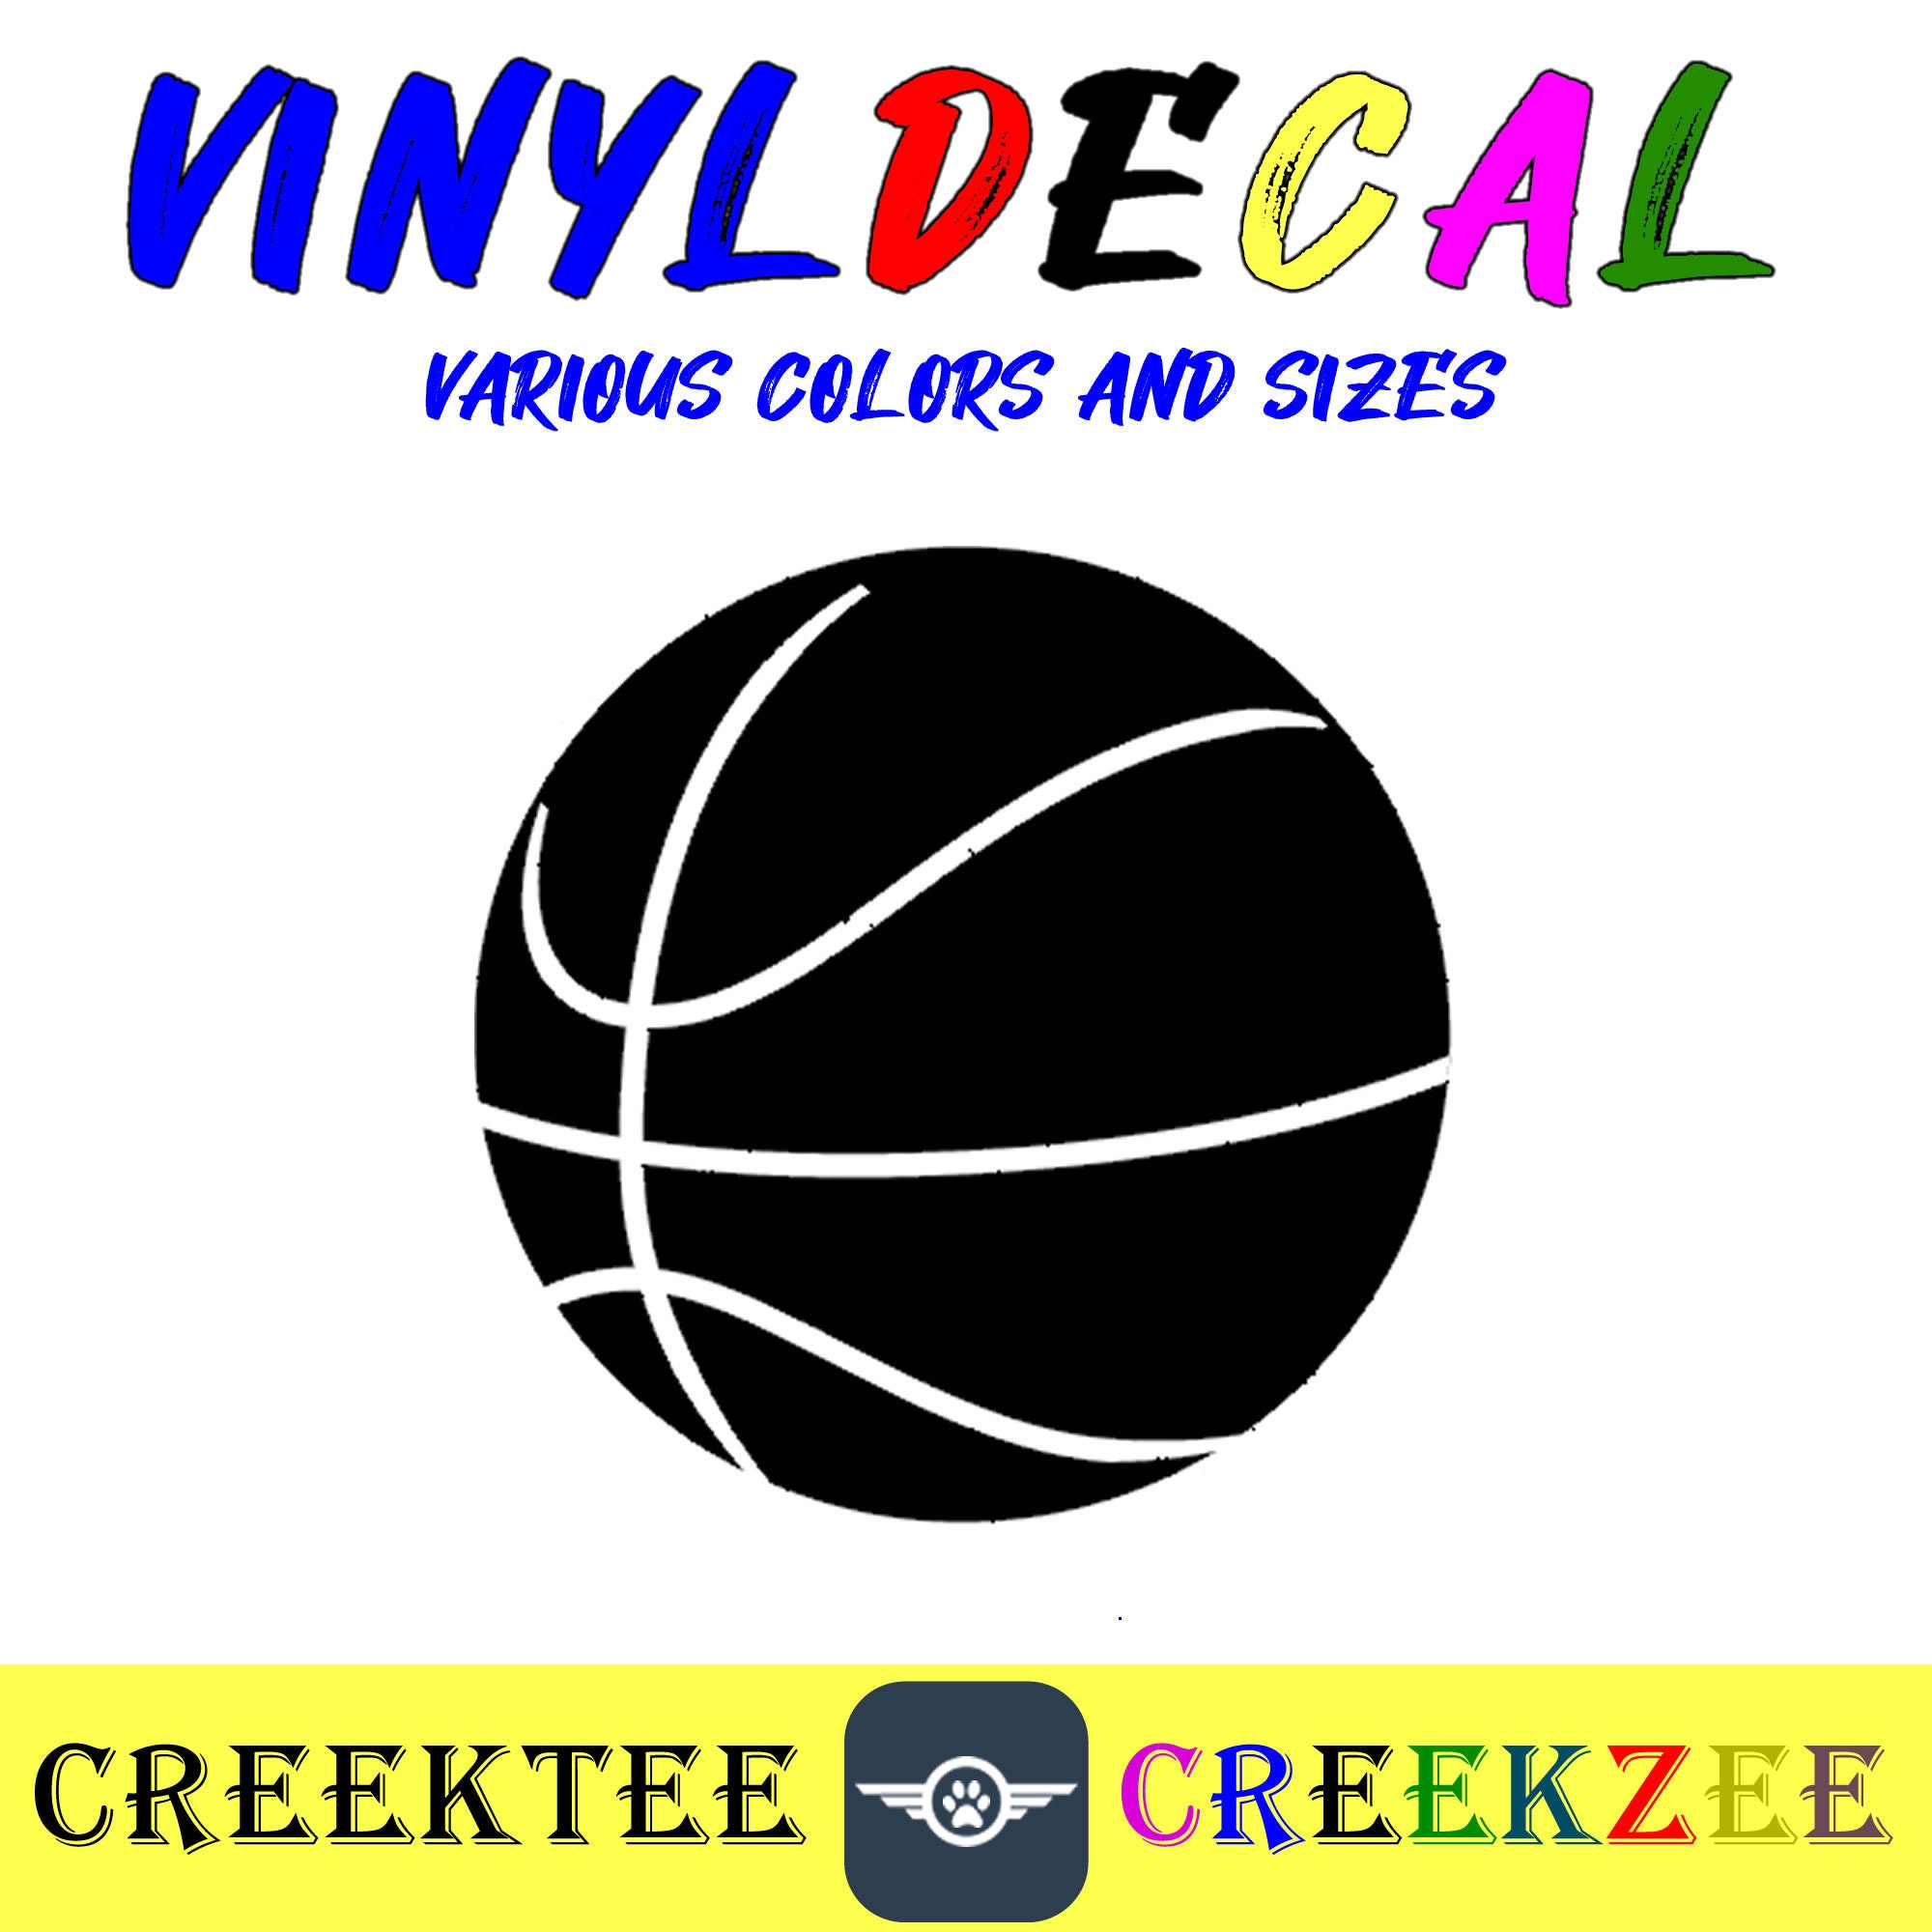 CAD$8.69 - Basket Ball vinyl decal in various sizes or colors